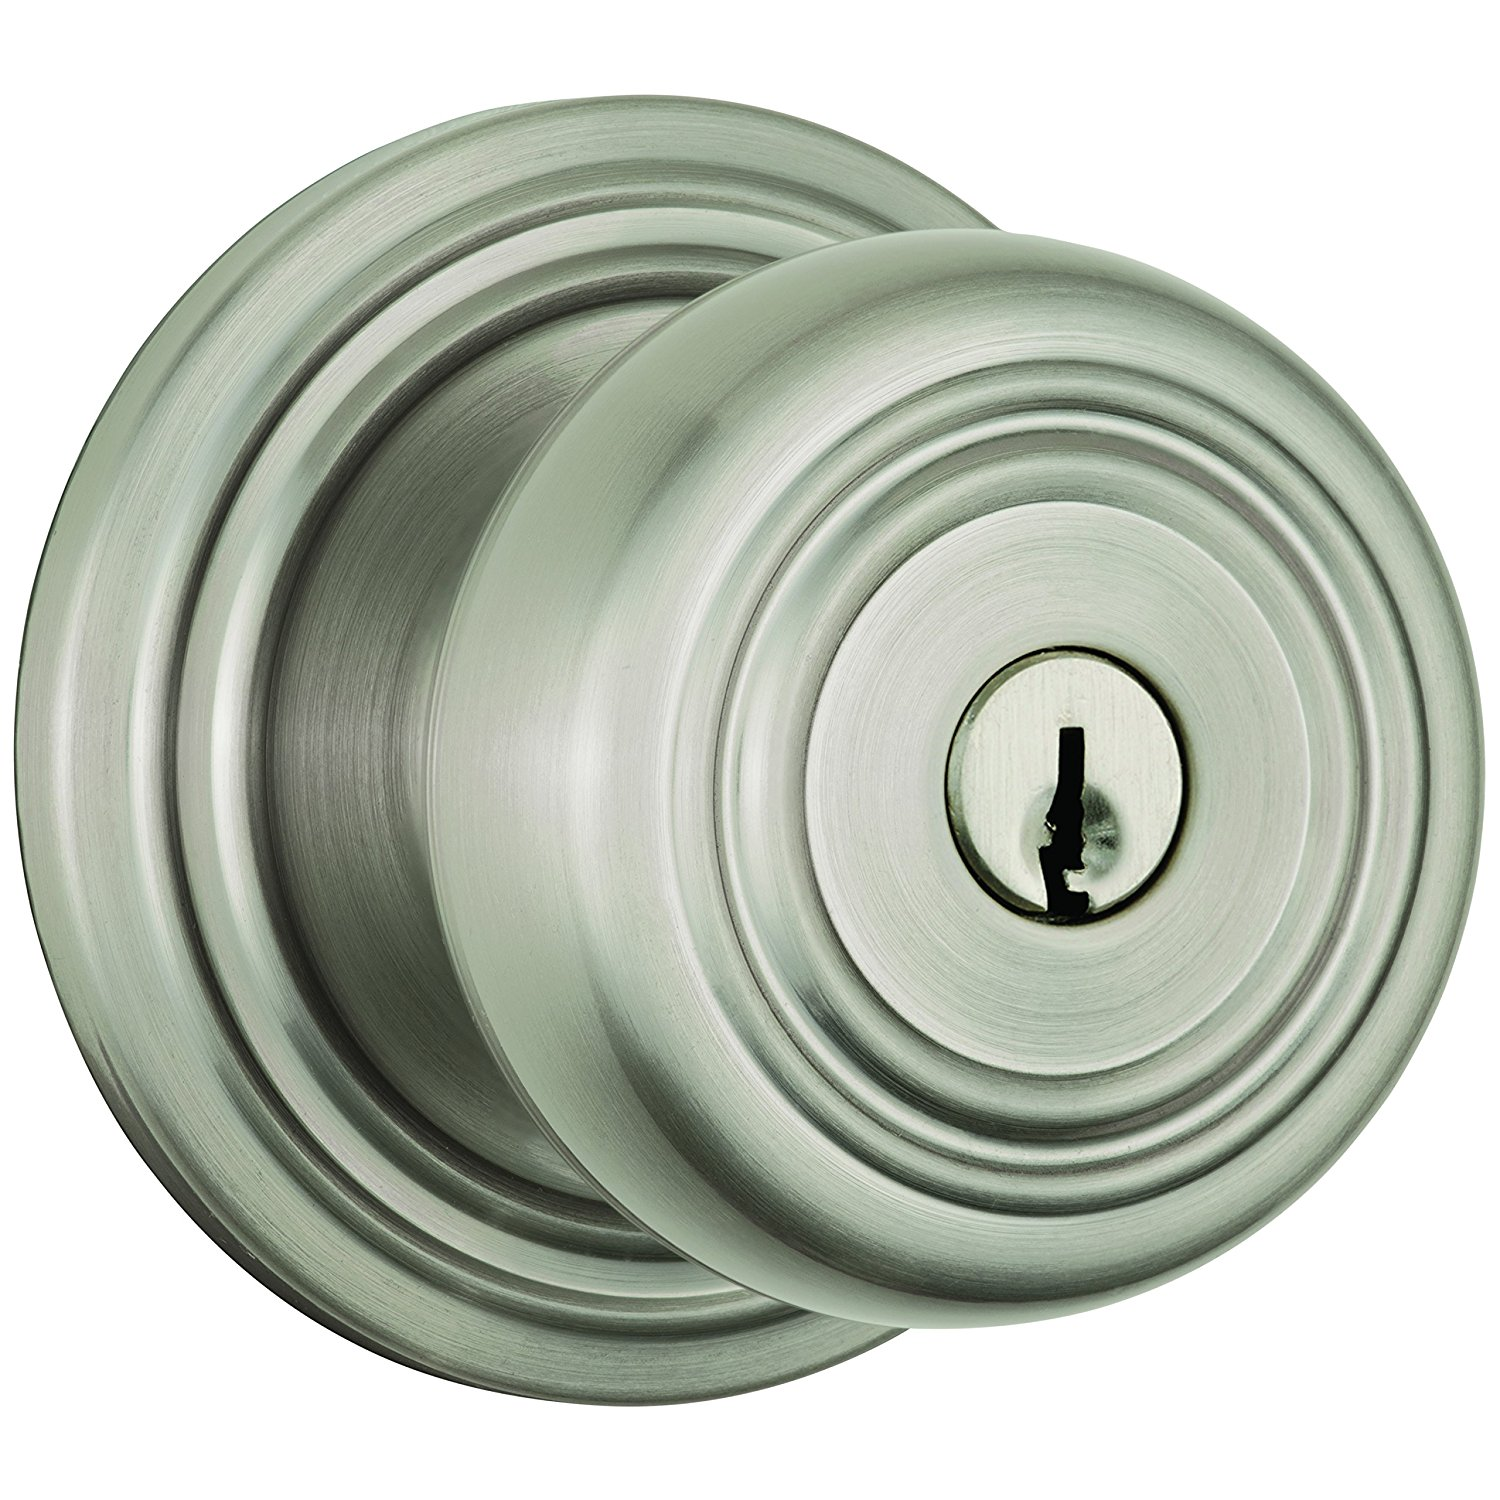 Get Quotations · Brinks Home Security Push Pull Rotate Door Locks 23004 119  Webley Entry Knob